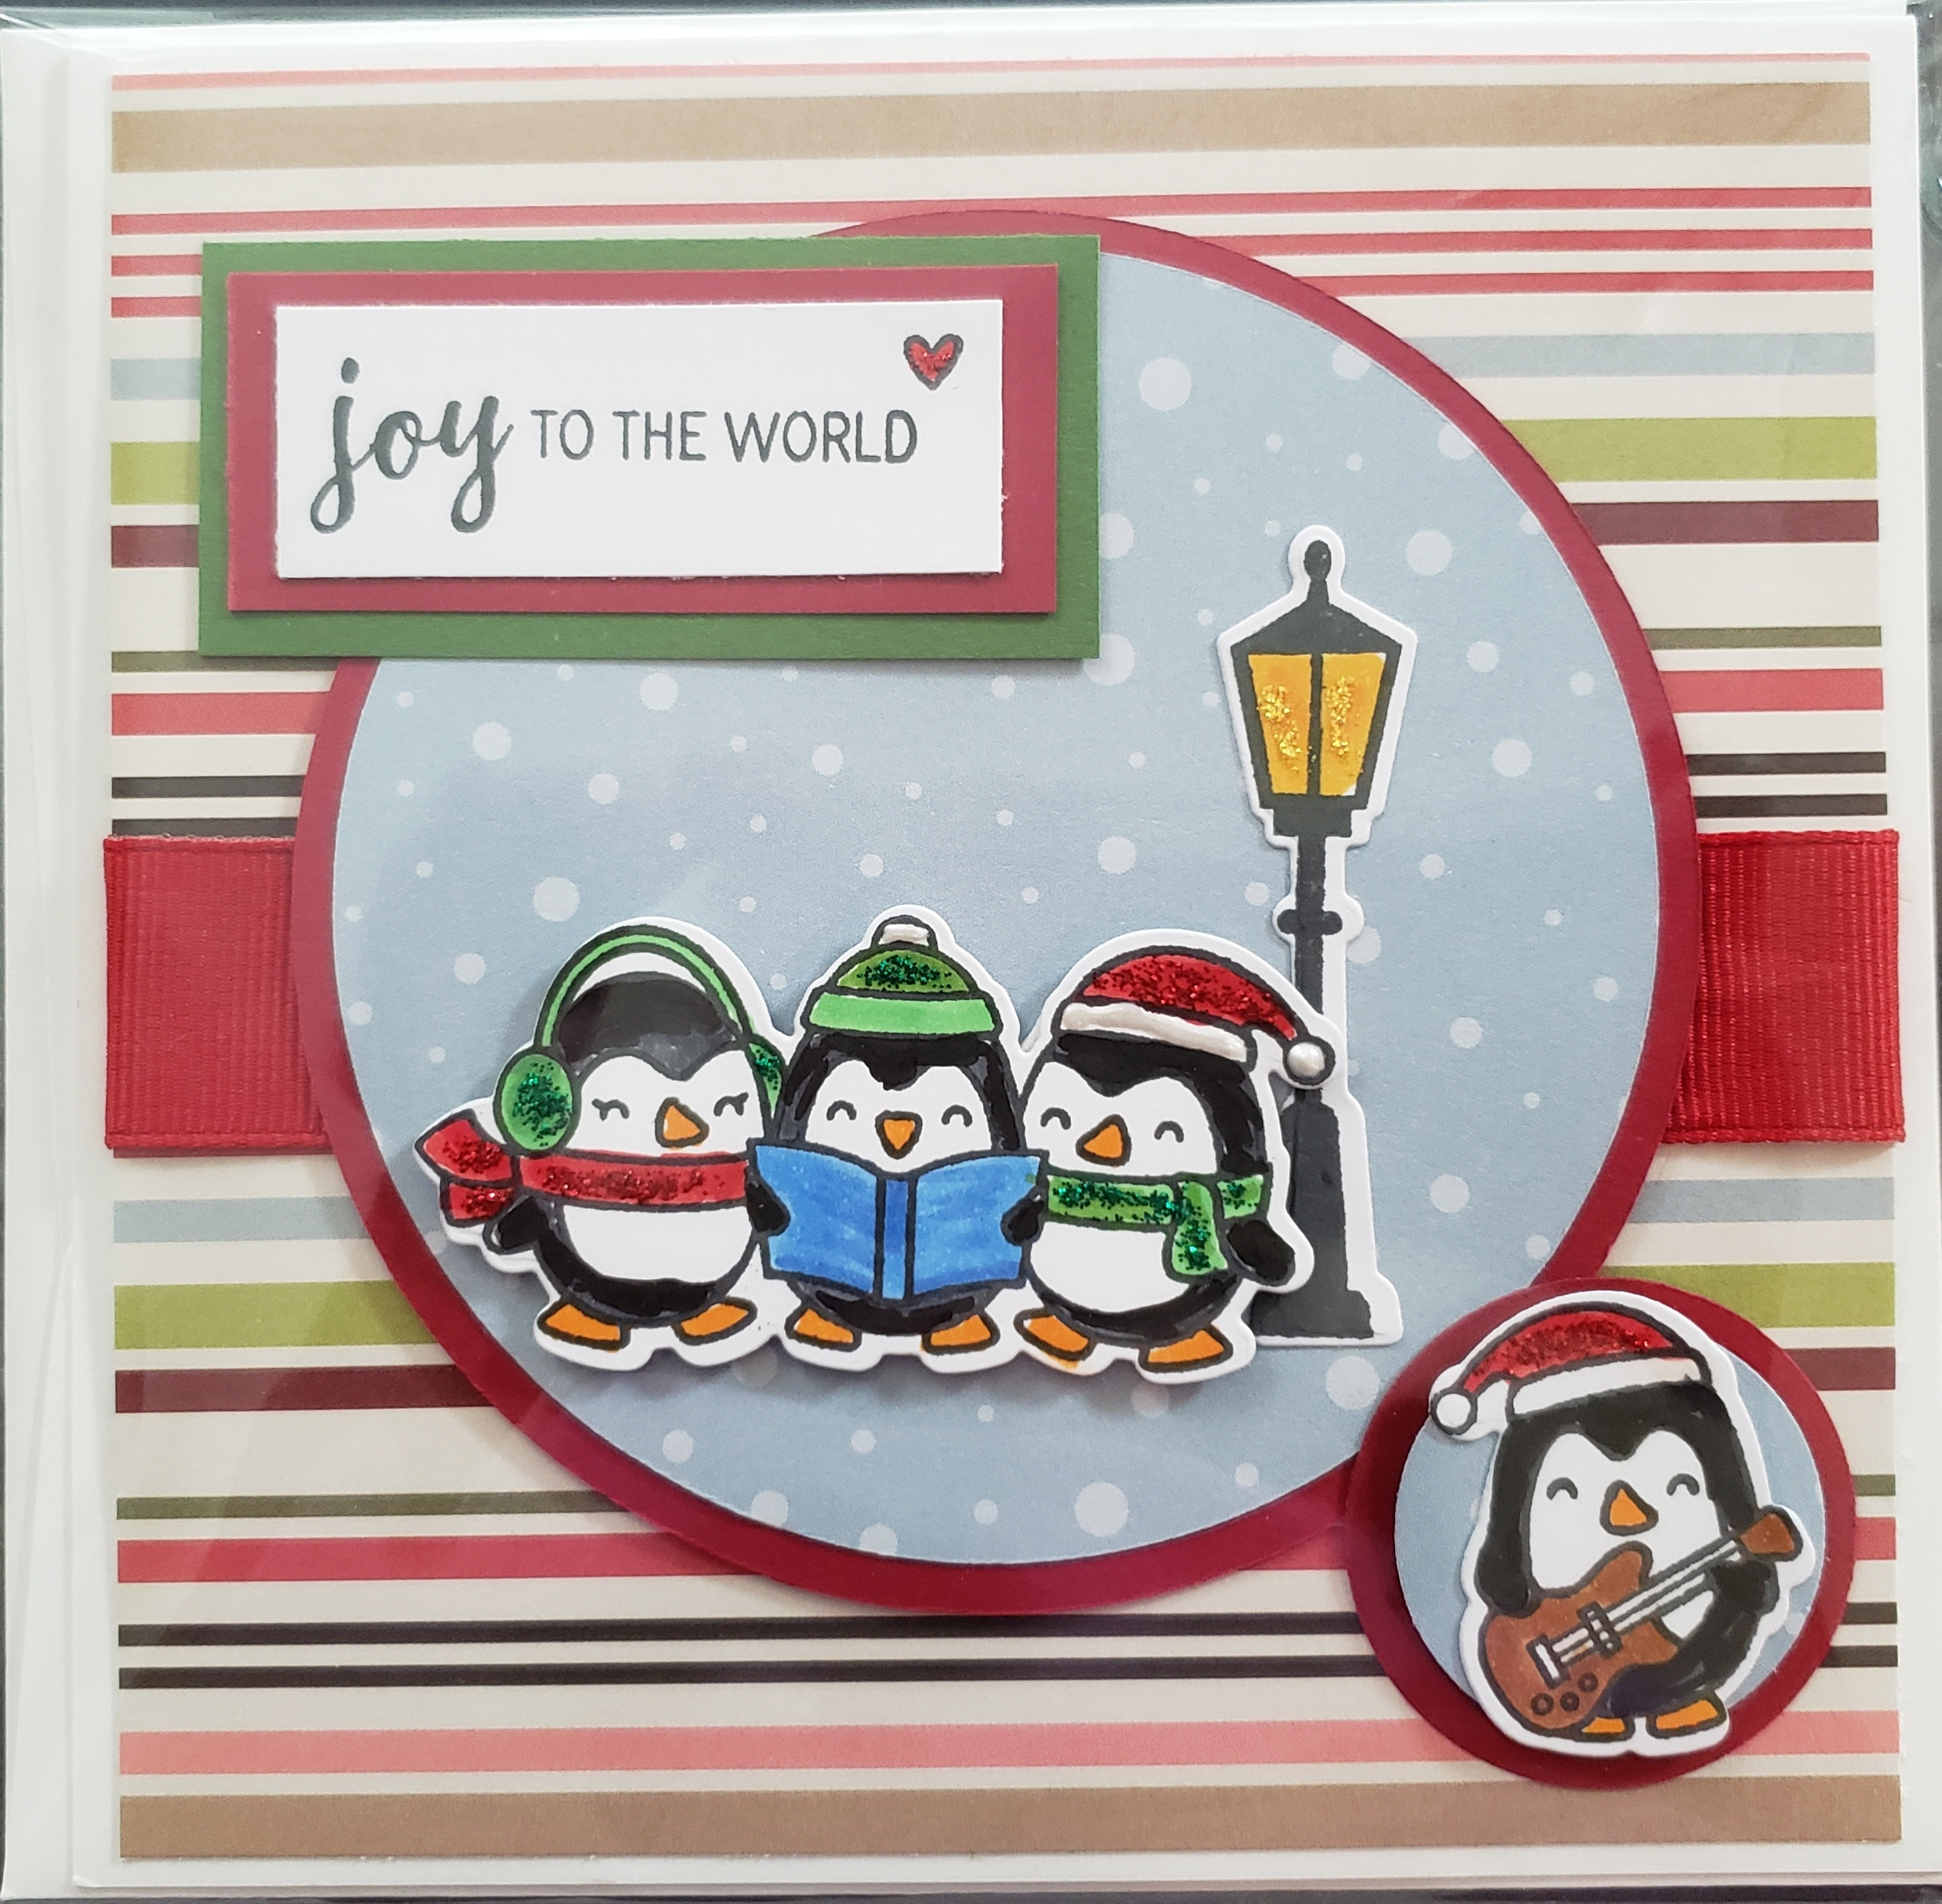 Joy to the World - penguin and guitar (1